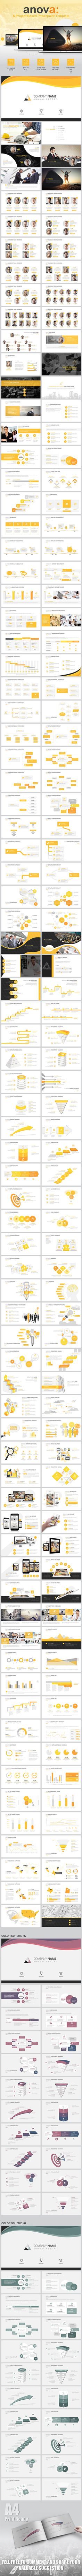 Anova - Project Based Powerpoint Template #design #slides Download: http://graphicriver.net/item/anova-project-based-powerpoint-template/12760172?ref=ksioks